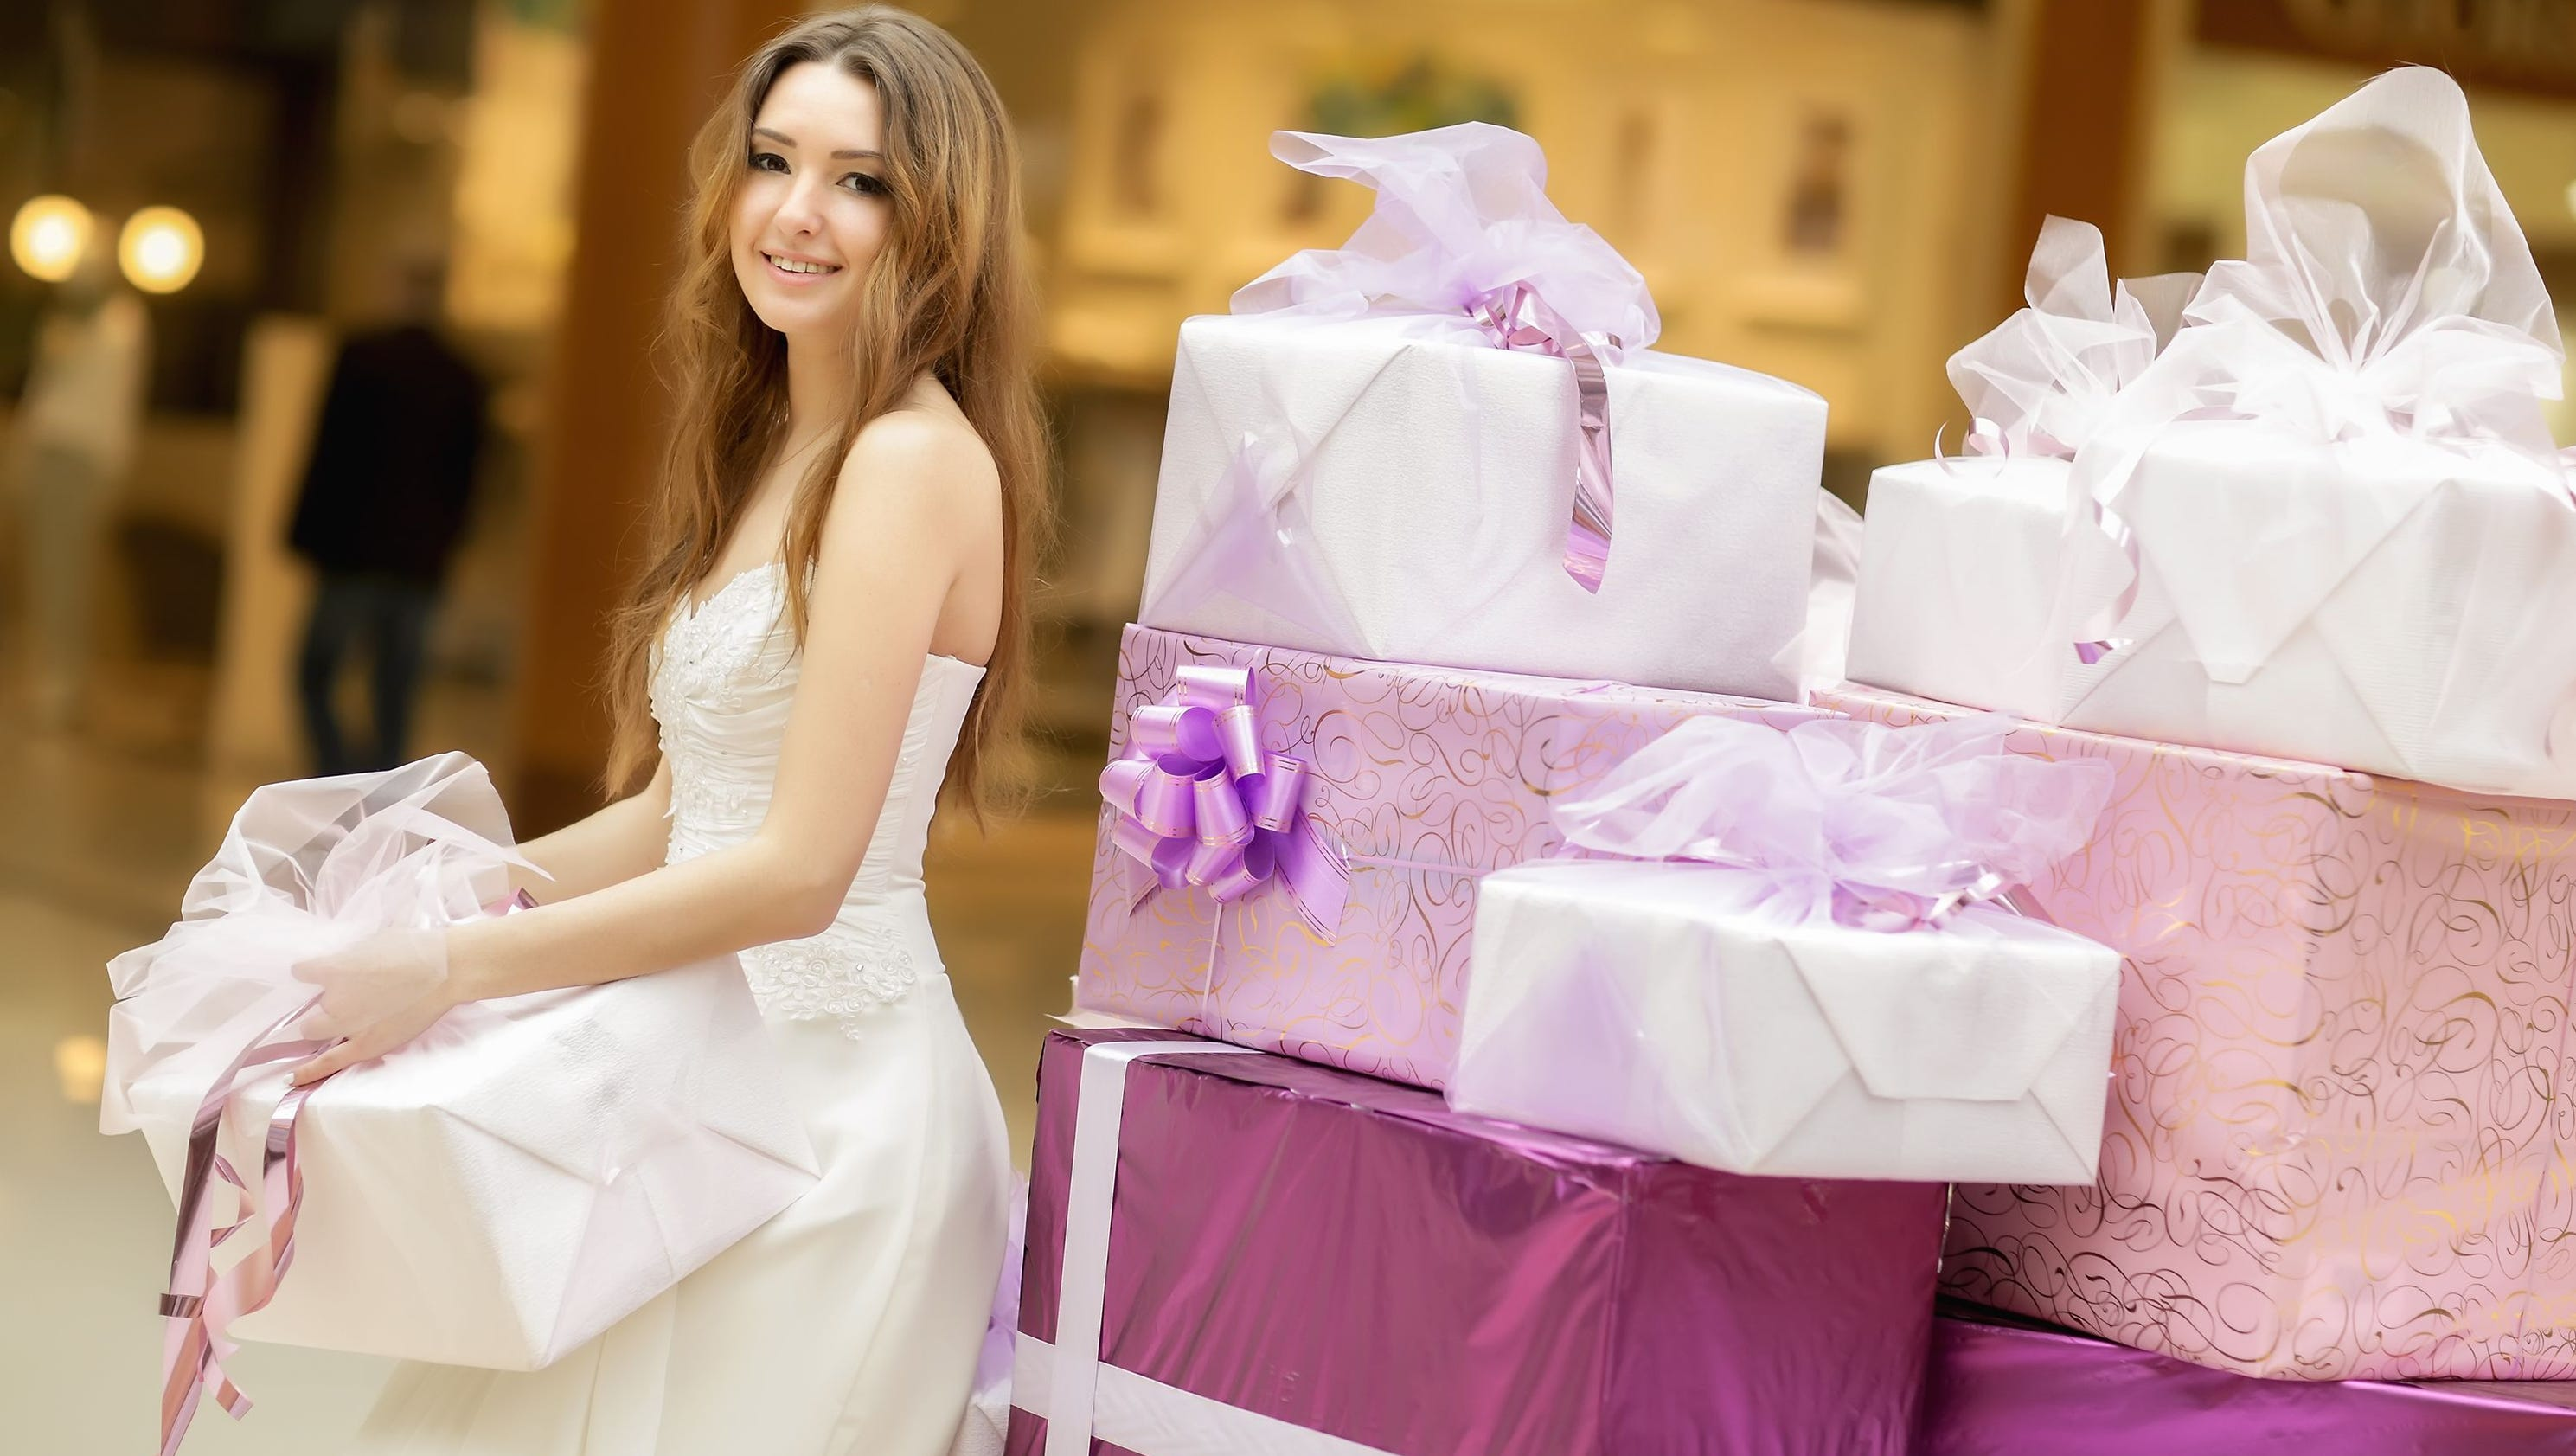 Weddings What To Give What Not To Give And How Much To Spend